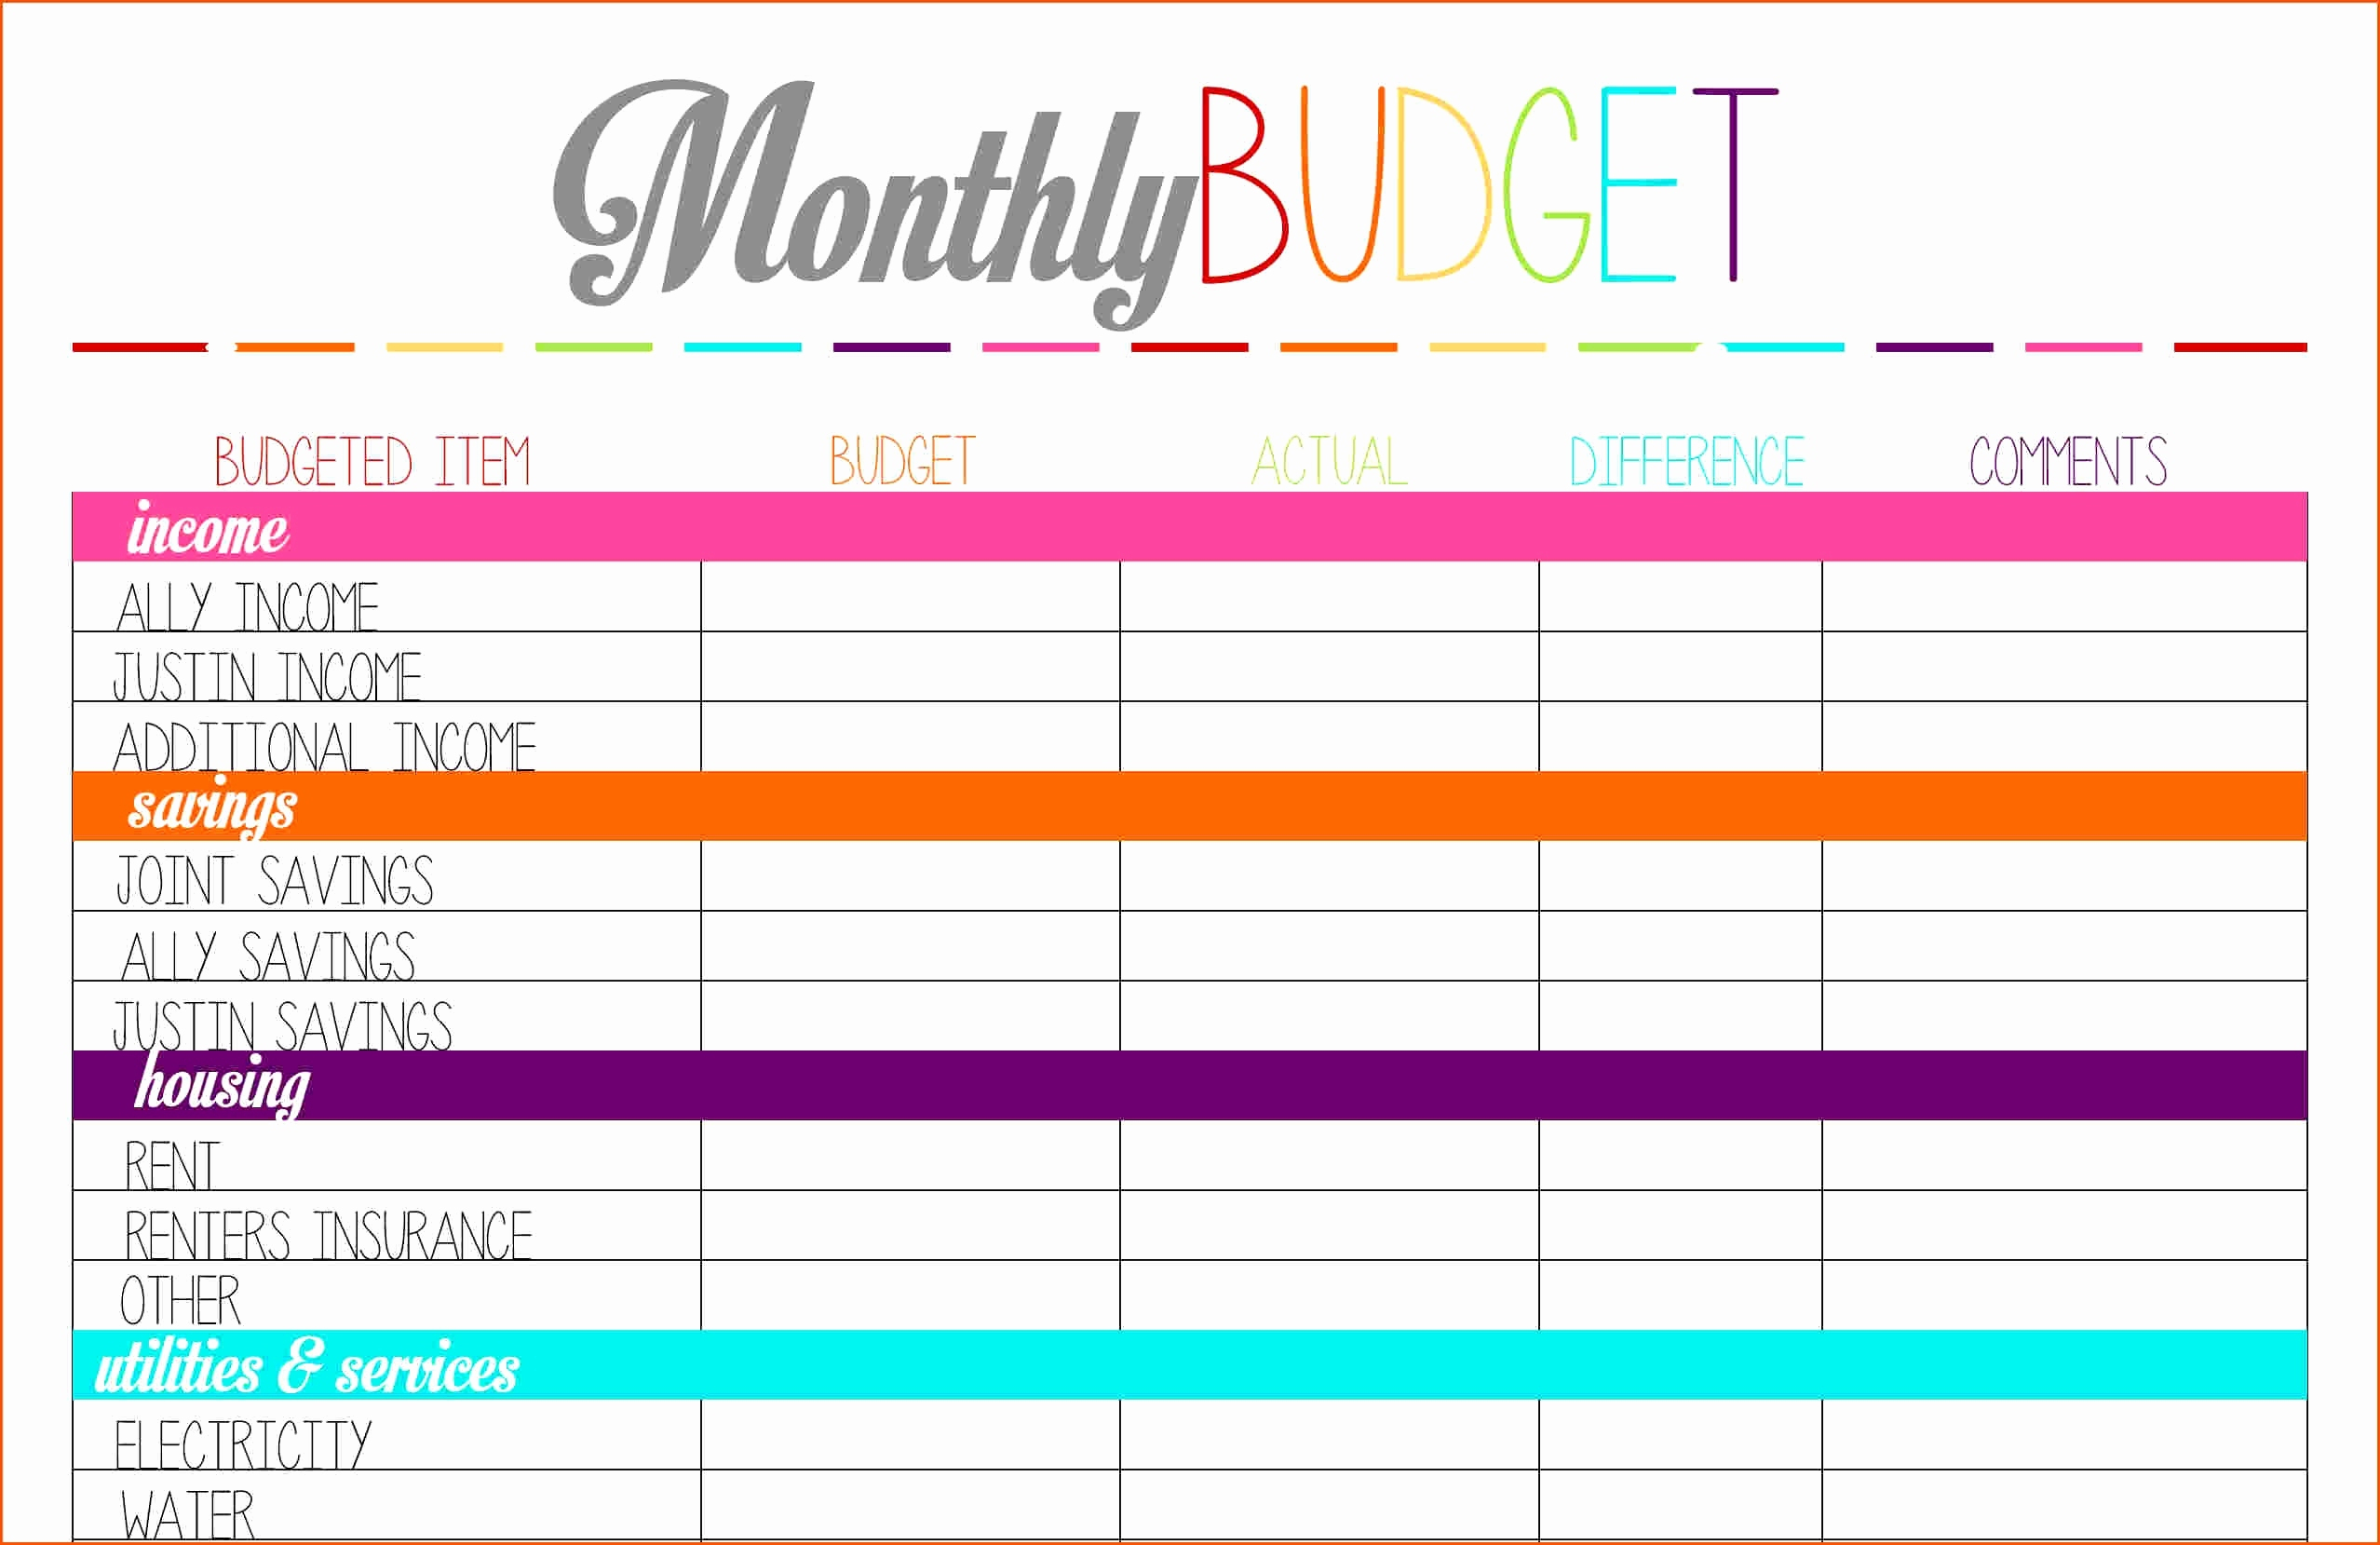 Dave Ramsey Budget Spreadsheet Excel Intended For Dave Ramsey Budget Worksheet  Resourcesaver